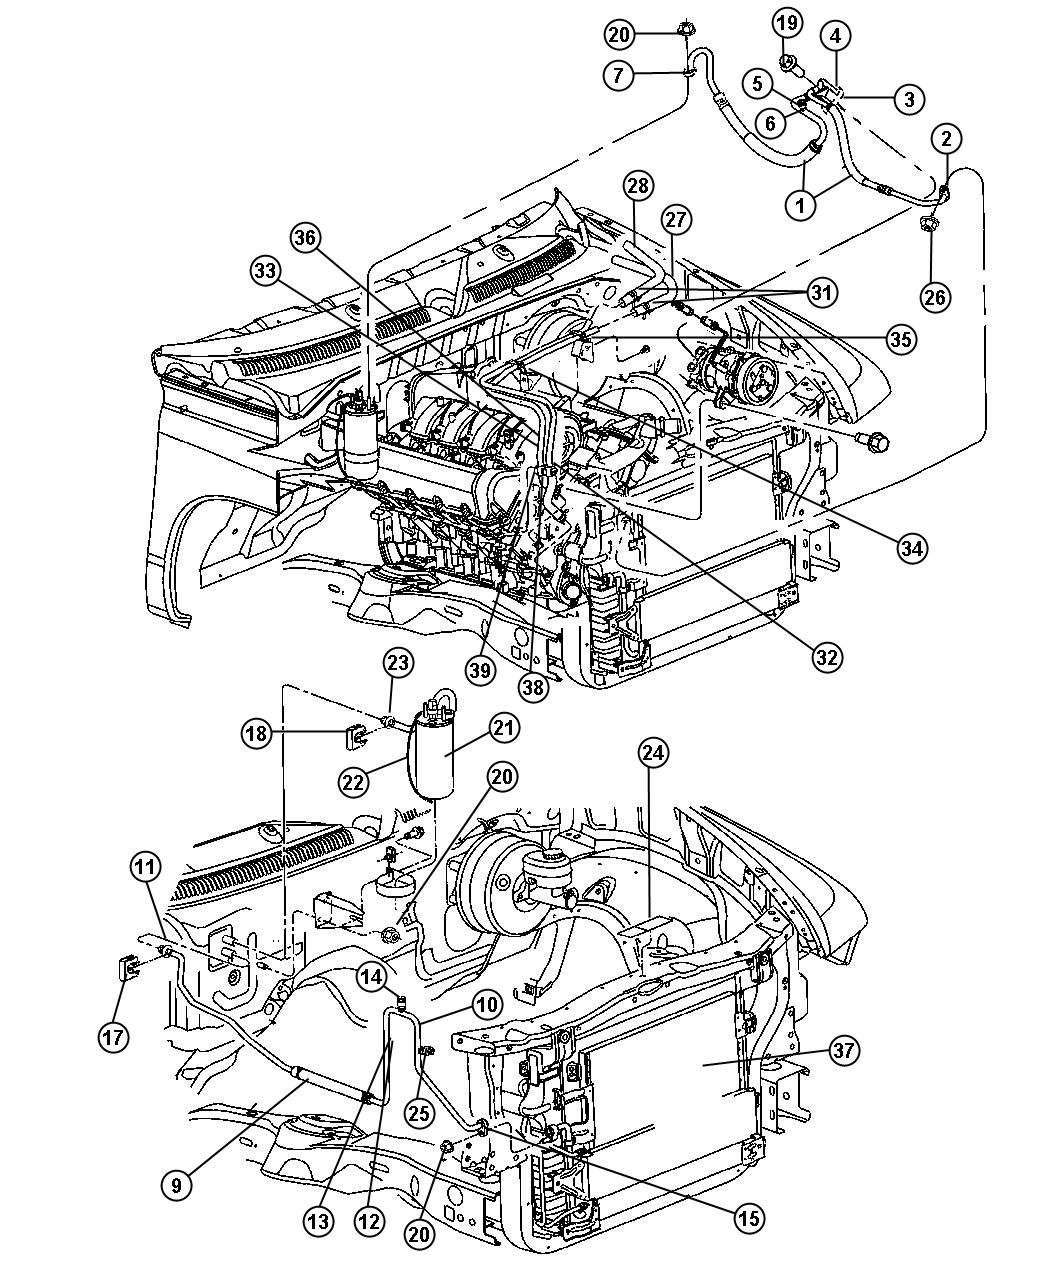 dodge dakota engine diagram new genuine mopar 5015544ac return tube / hose for dodge ... oo dodge dakota engine diagram #4